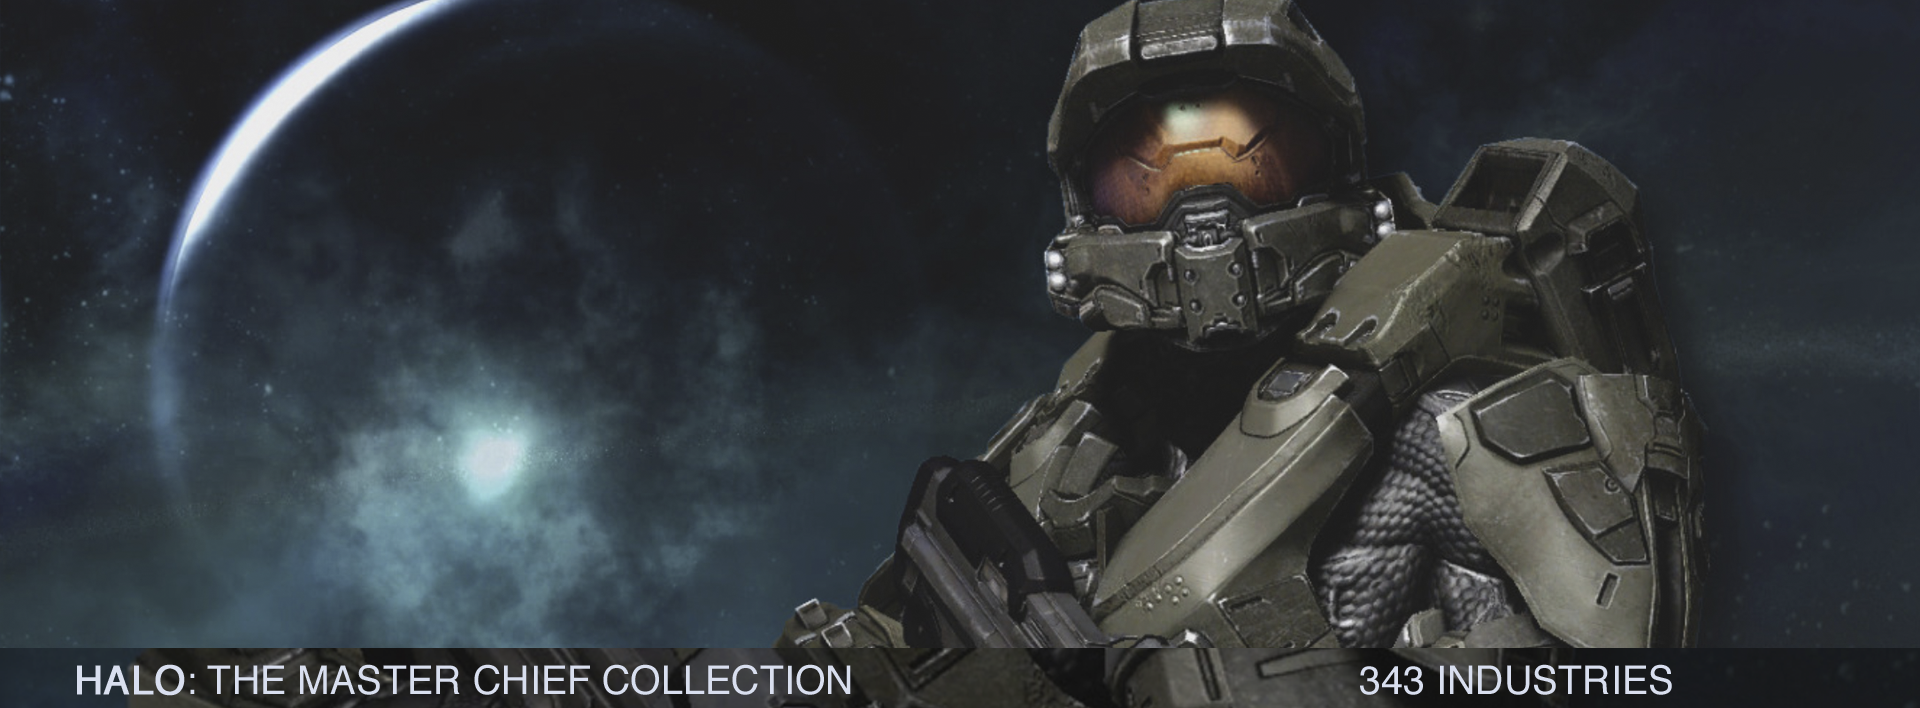 Halo- The Master Chief Collection